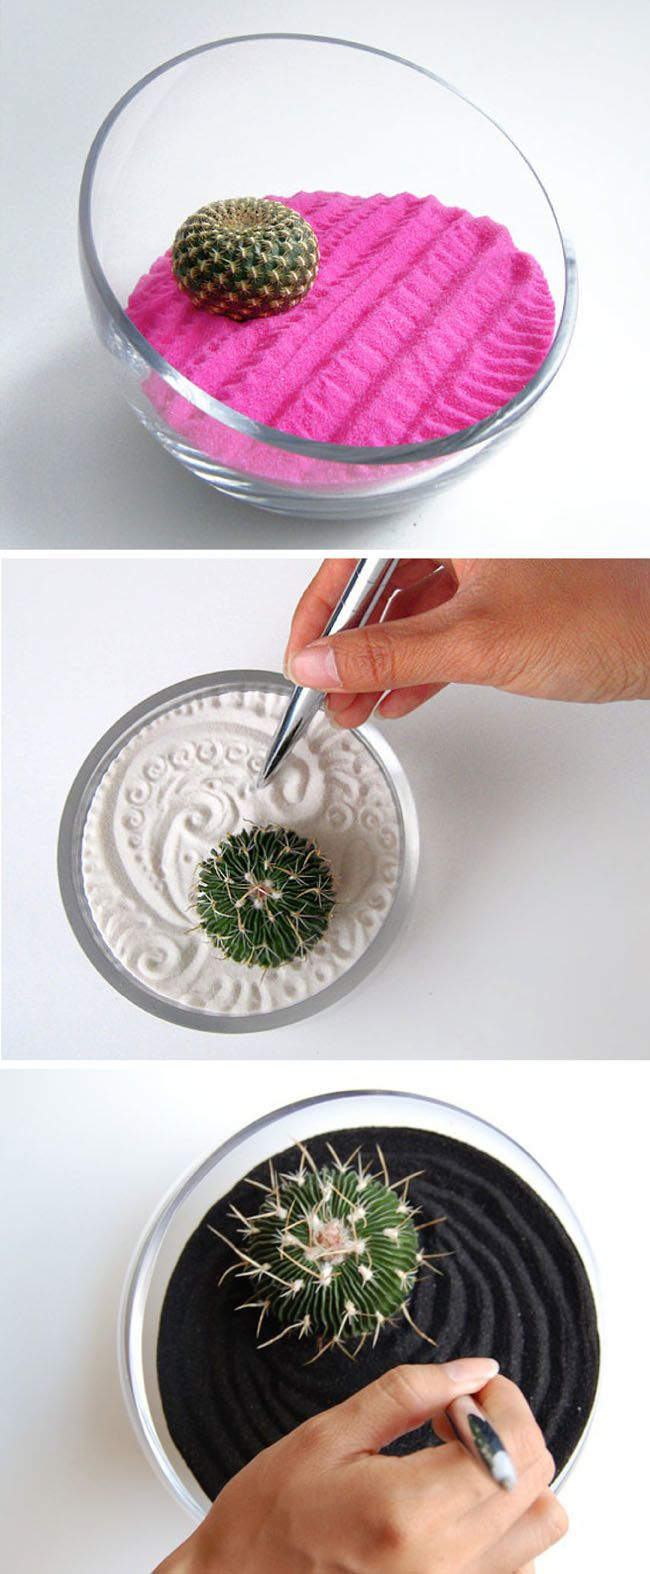 Cactus zen garden diy do it myself pinterest gardens mini zen cactus zen garden diy solutioingenieria Gallery